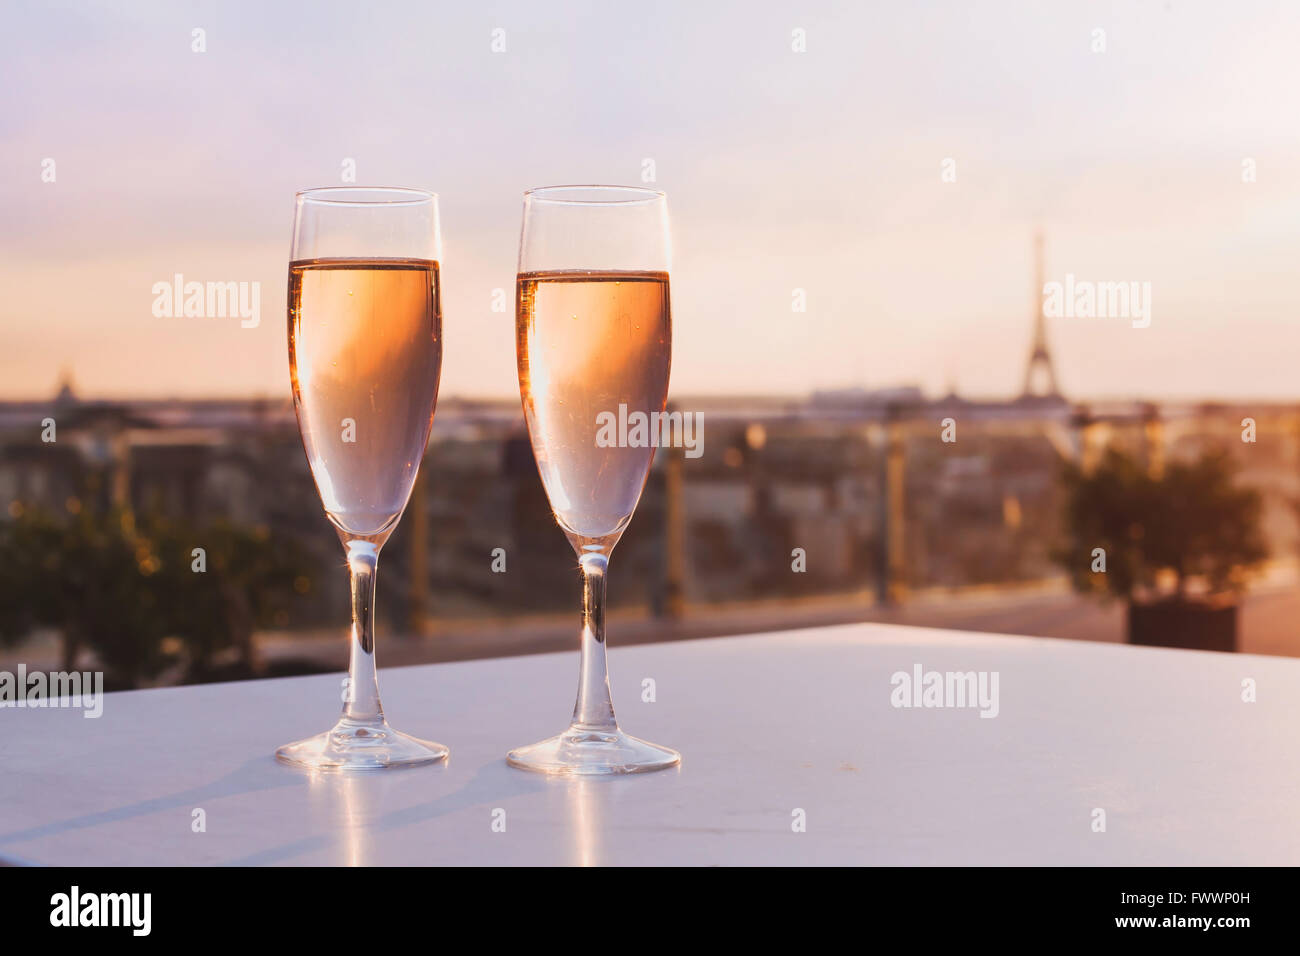 champagne eiffel tower photos champagne eiffel tower images alamy. Black Bedroom Furniture Sets. Home Design Ideas